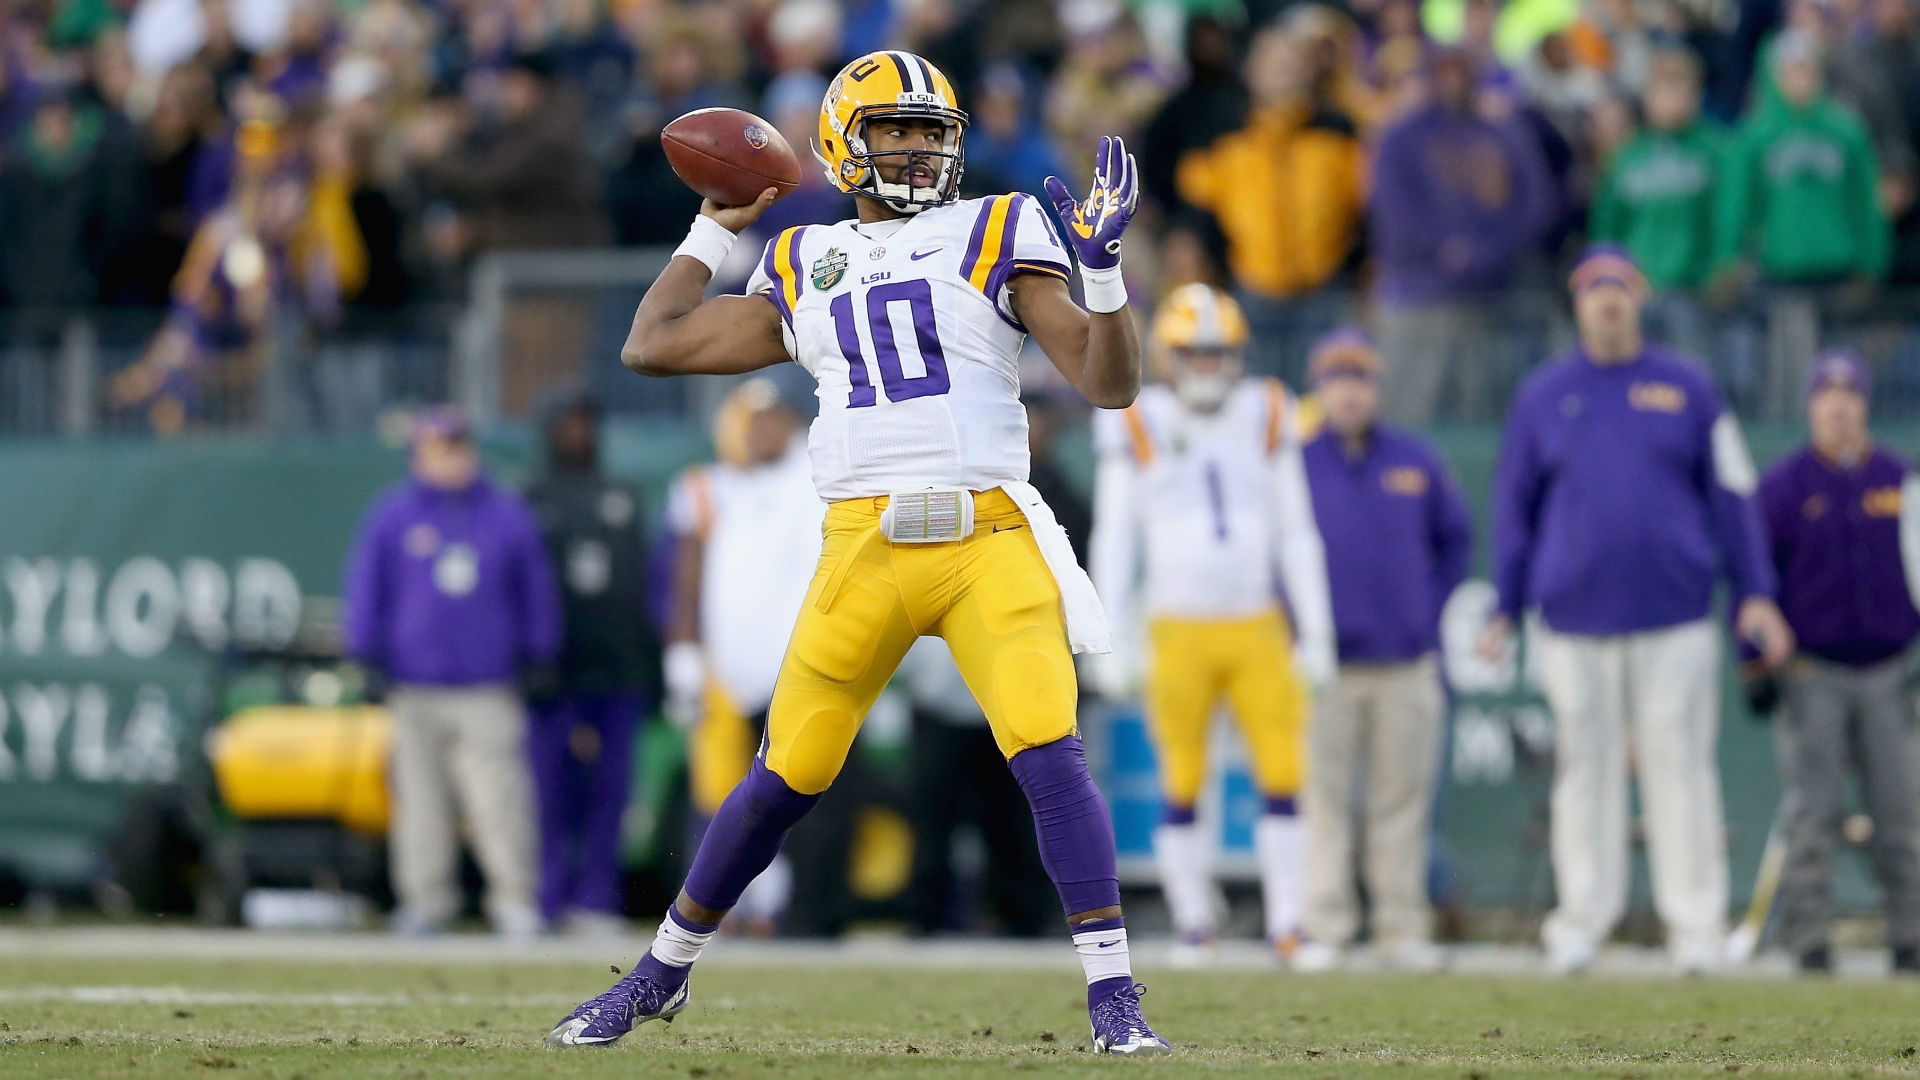 LSU QB Anthony Jennings, teammates could soon have charges dropped